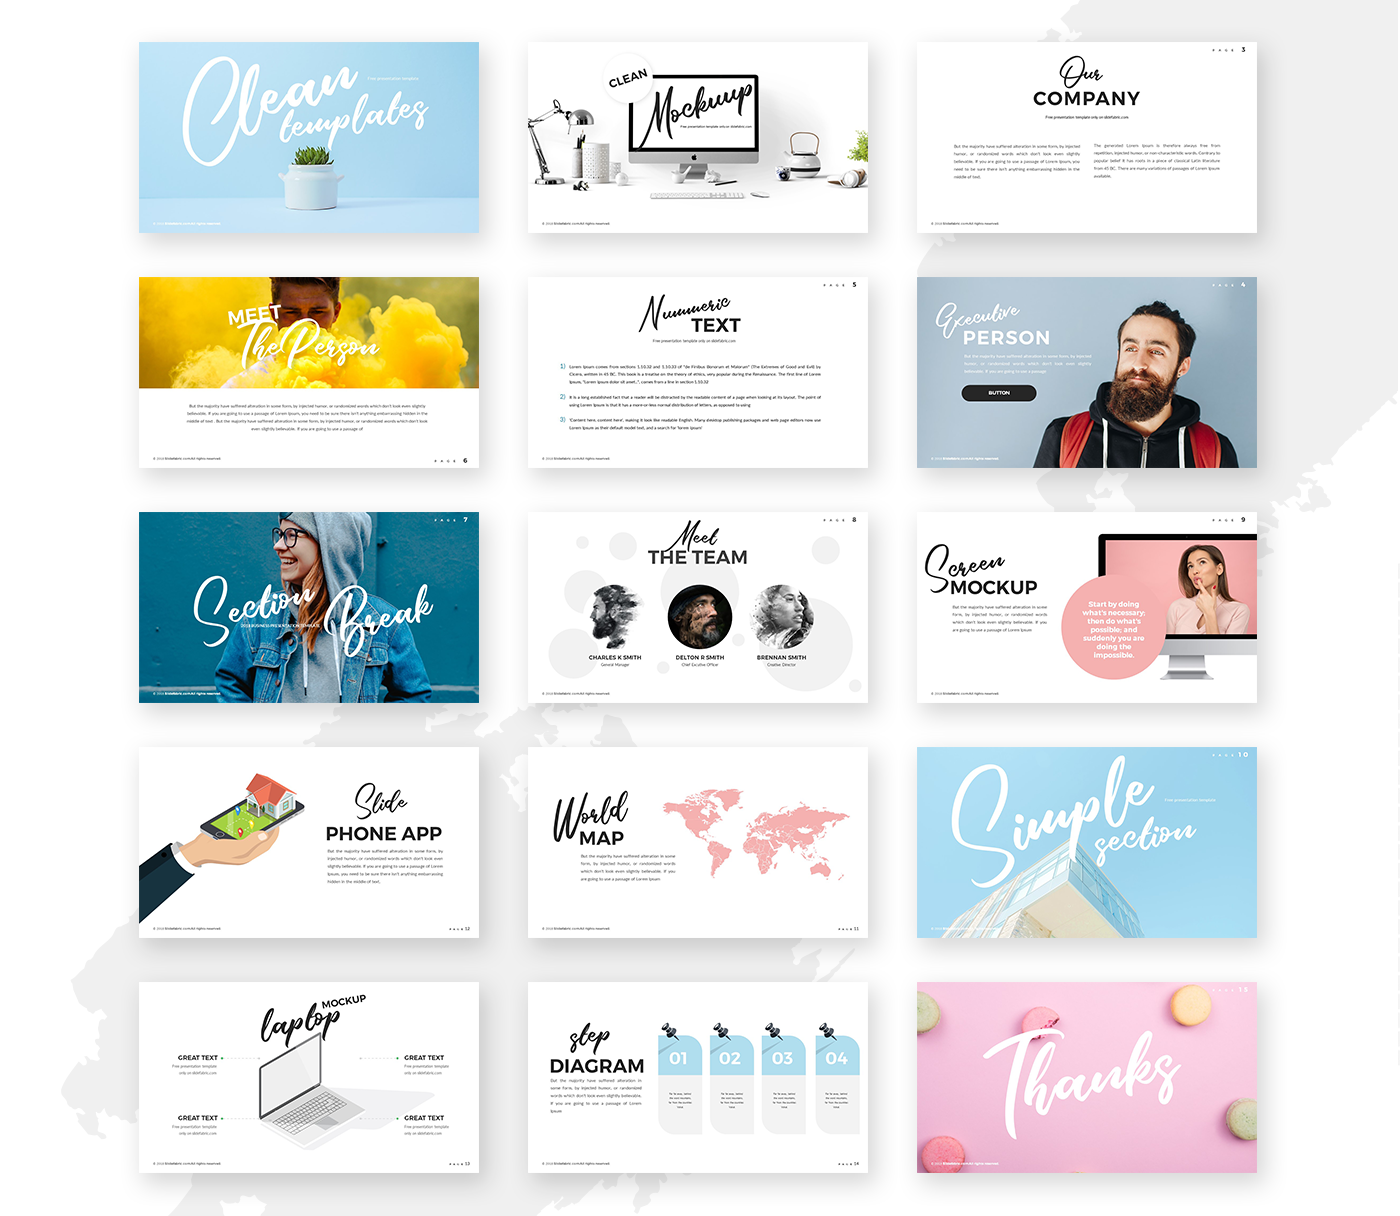 Clean Powerpoint Template Pixelify Best Free Fonts